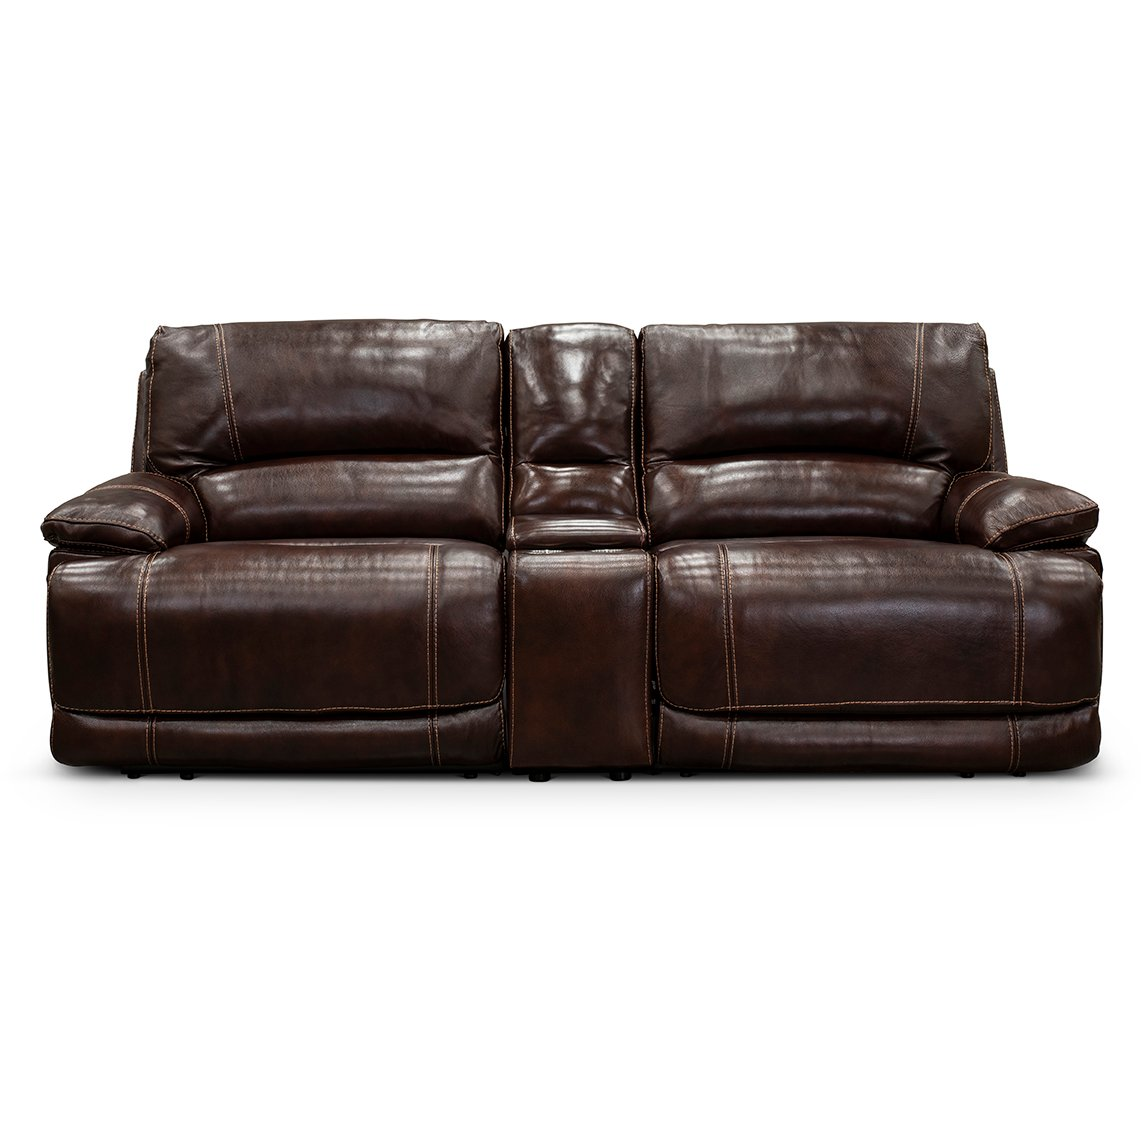 Burgundy 3 Piece Leather Match Power Reclining Console